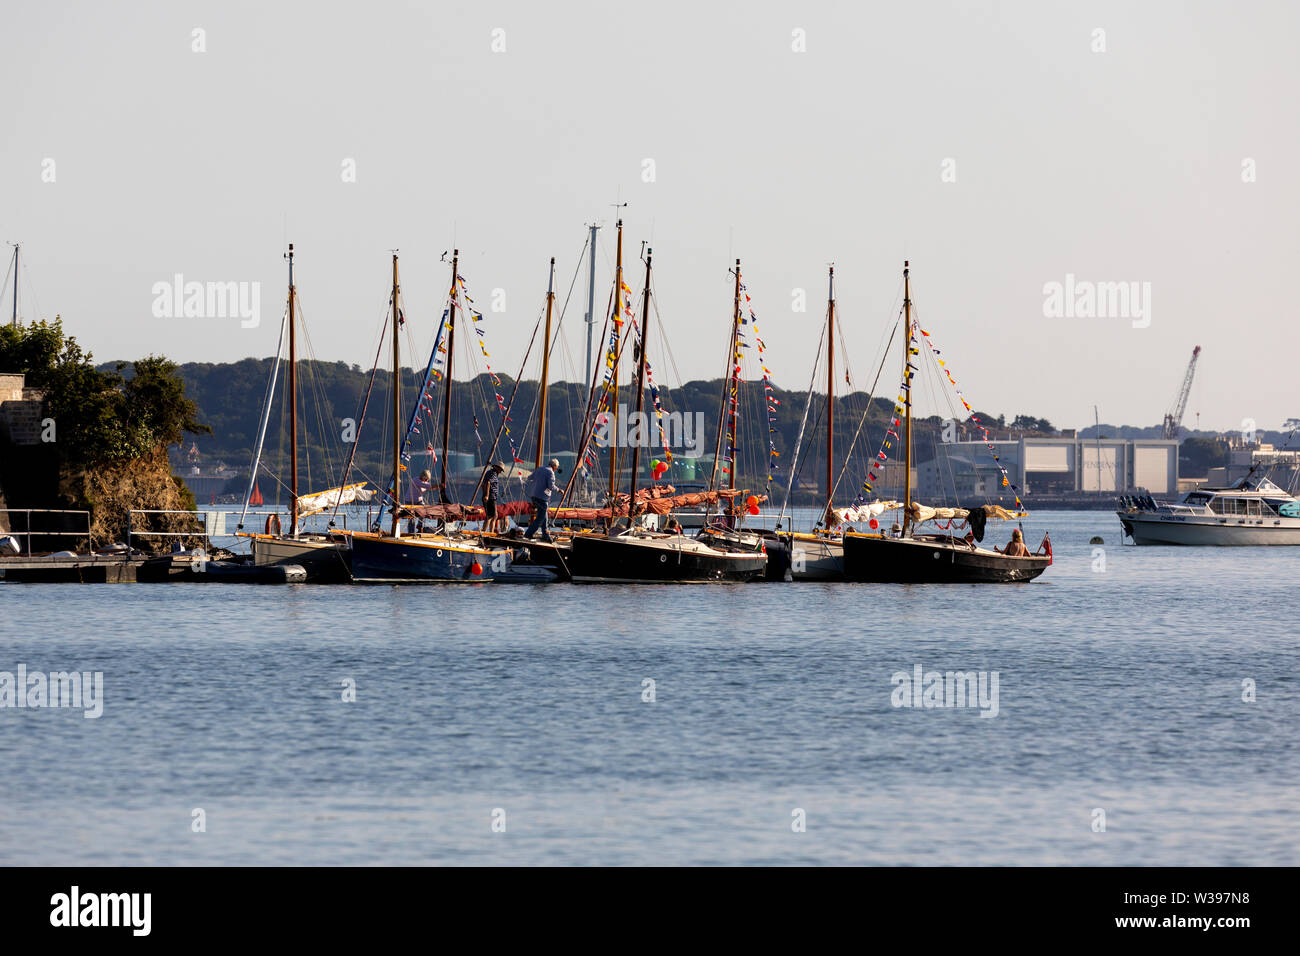 Shrimper Class Meet at St Just-in-Roseland, Carrick Roads, Falmouth - Stock Image